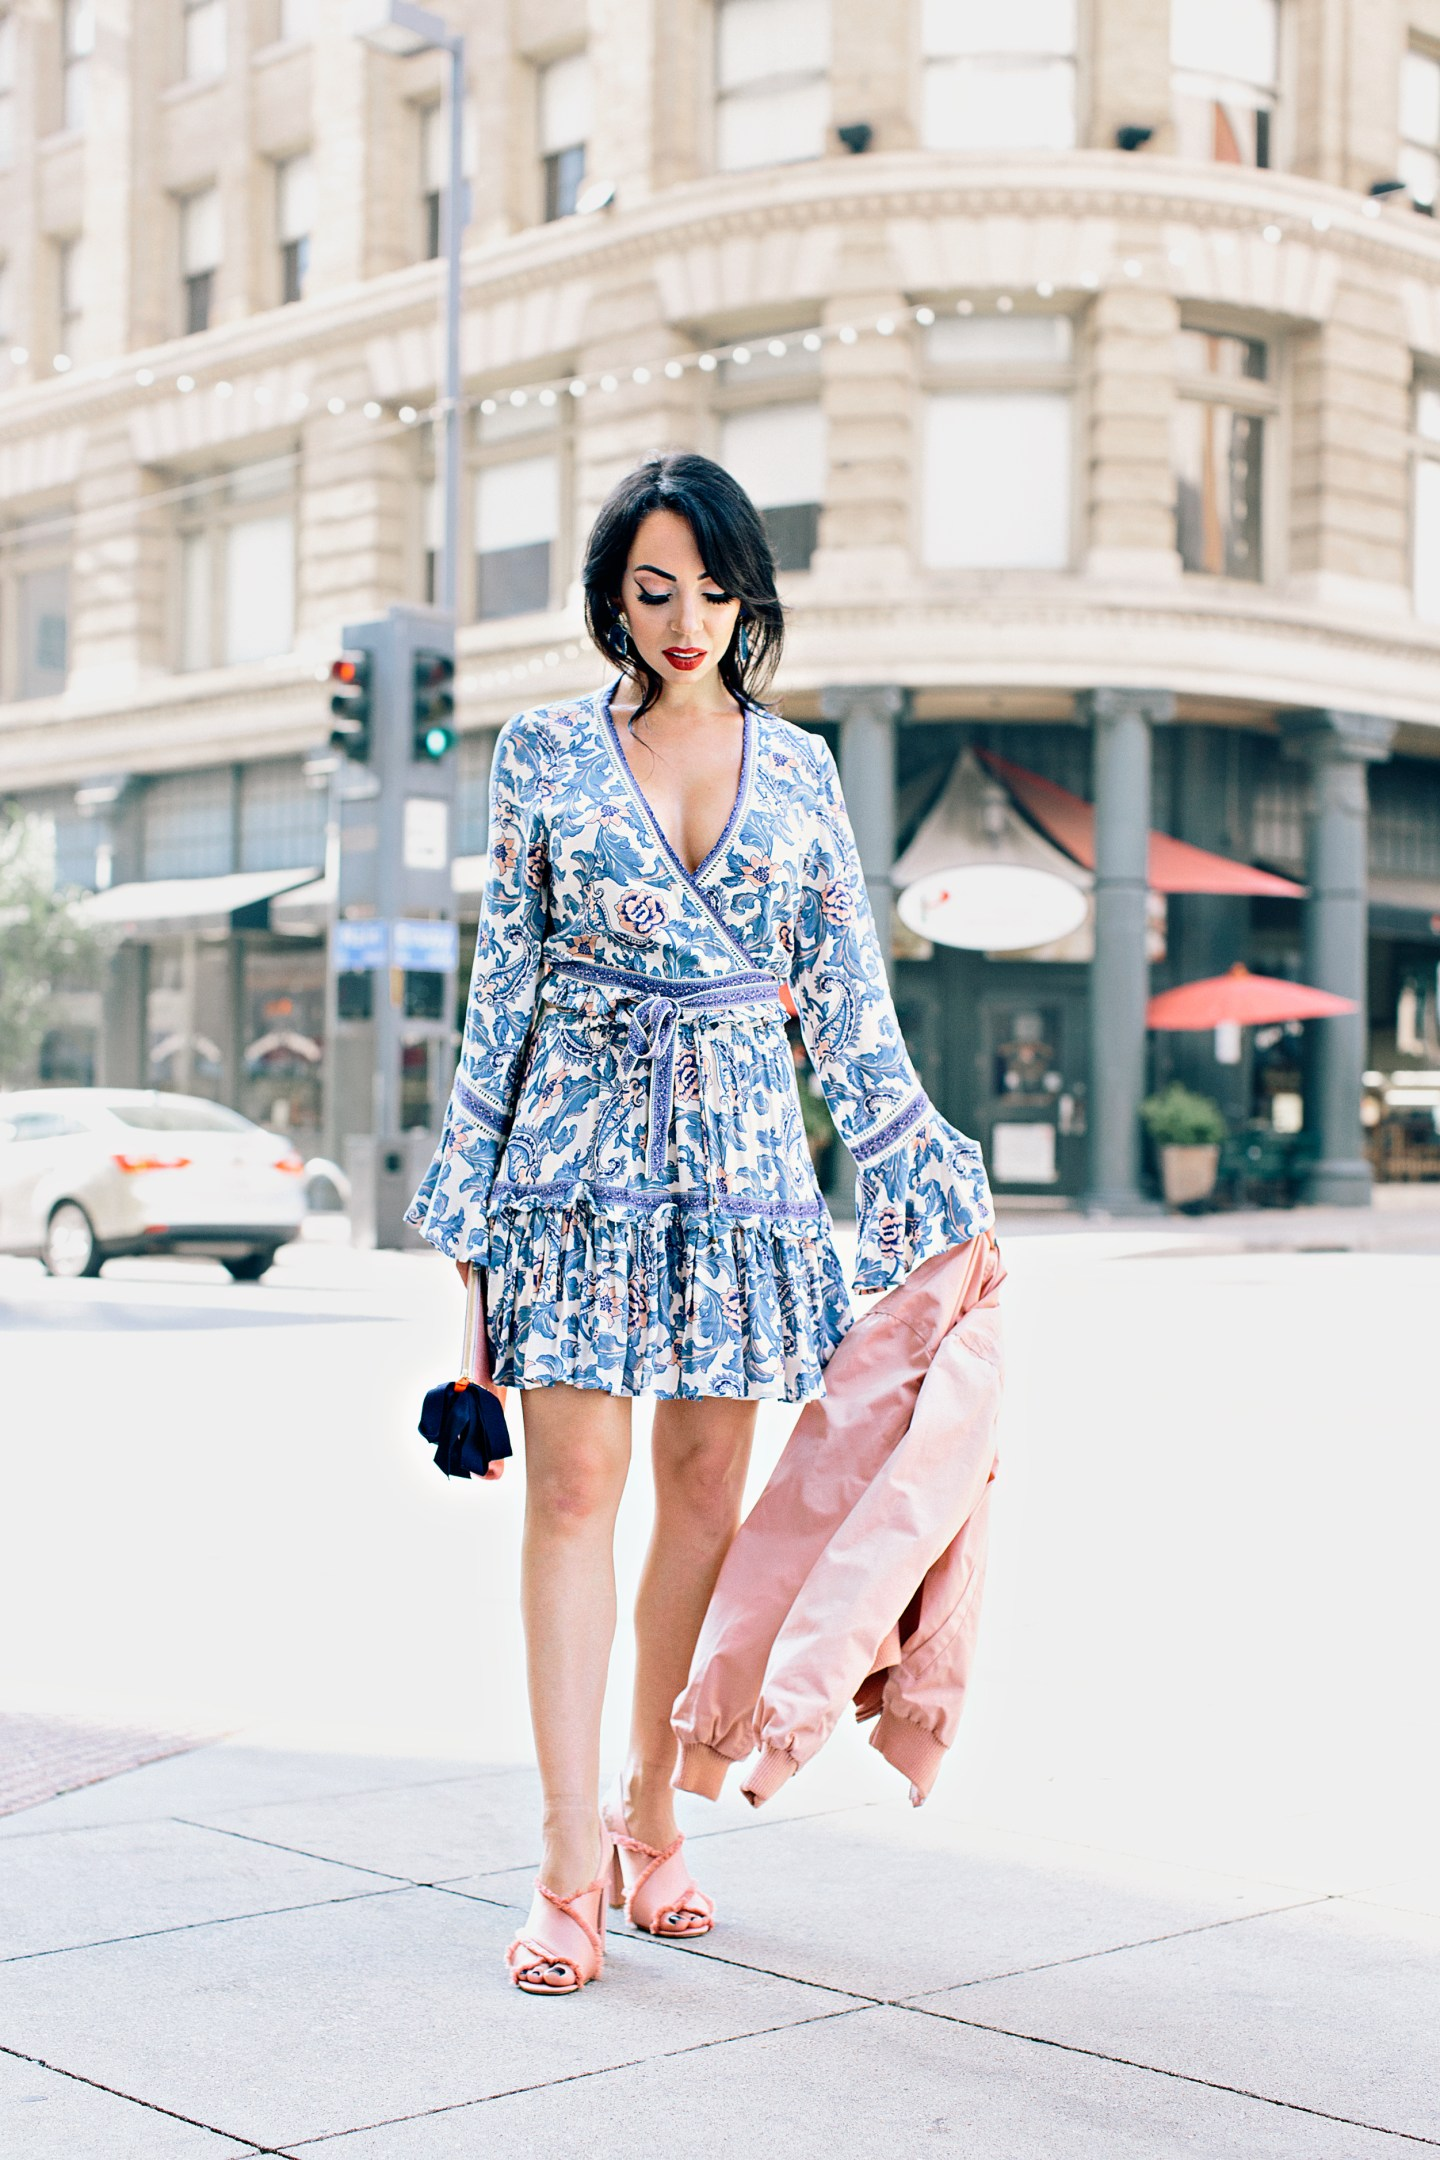 30 Days of Holiday Dress-ing | No. 10 Two Piece Sets